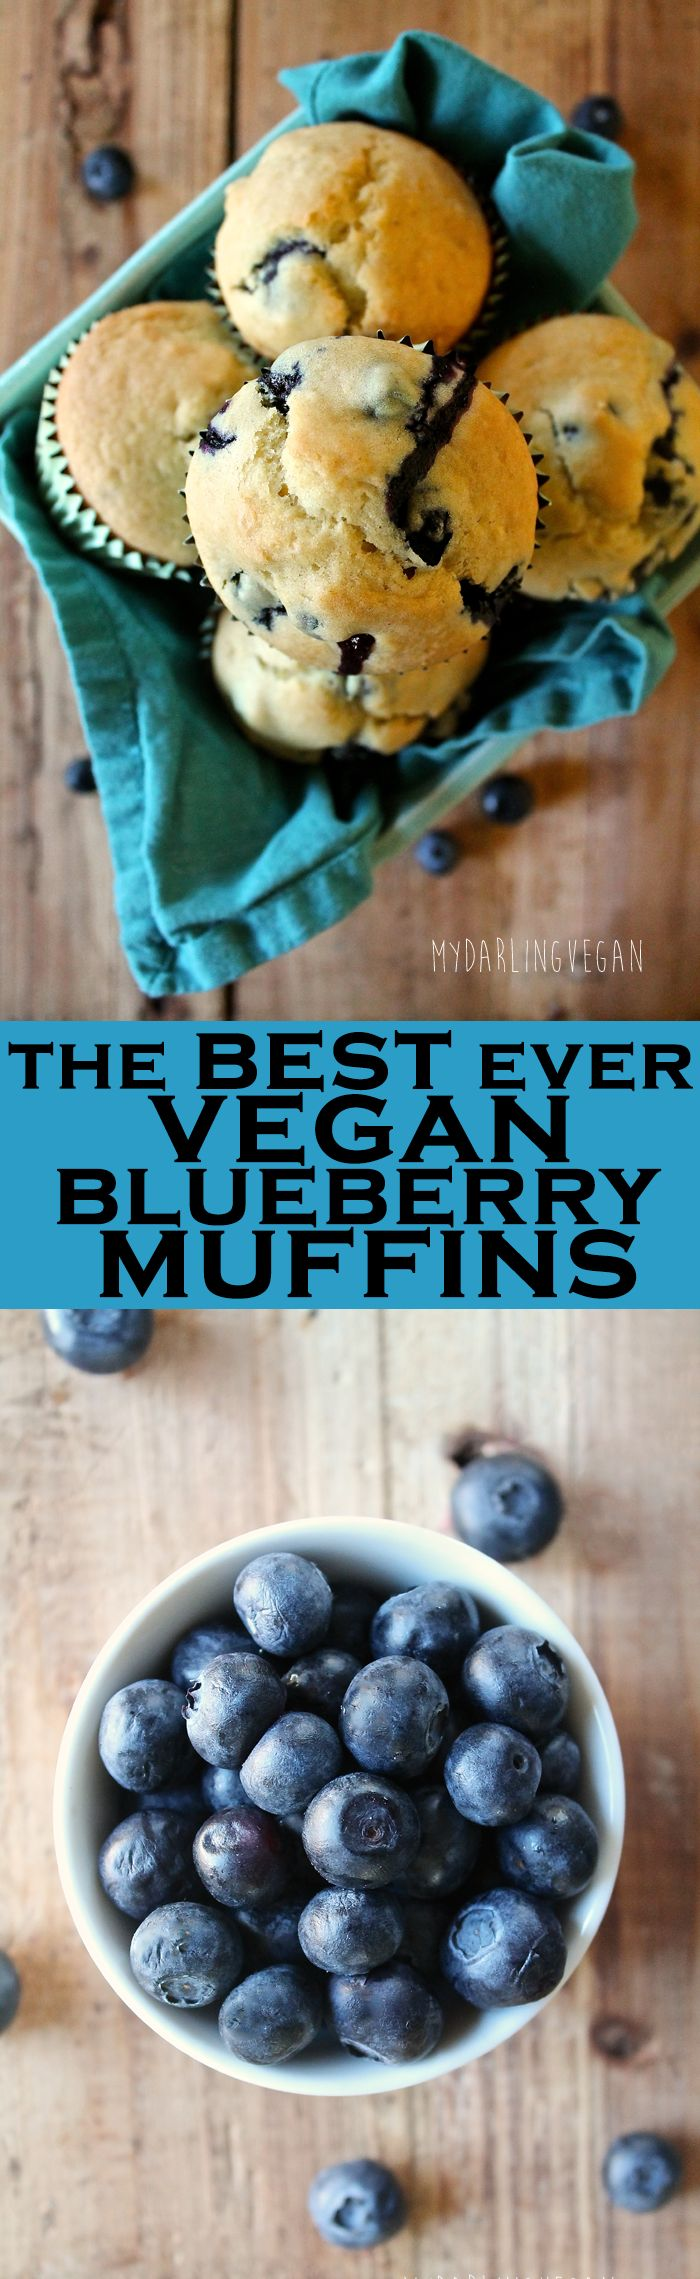 These vegan blueberry muffins are the perfect combination of sweet, flaky, buttery, and zesty. Check out why everyone is loving it